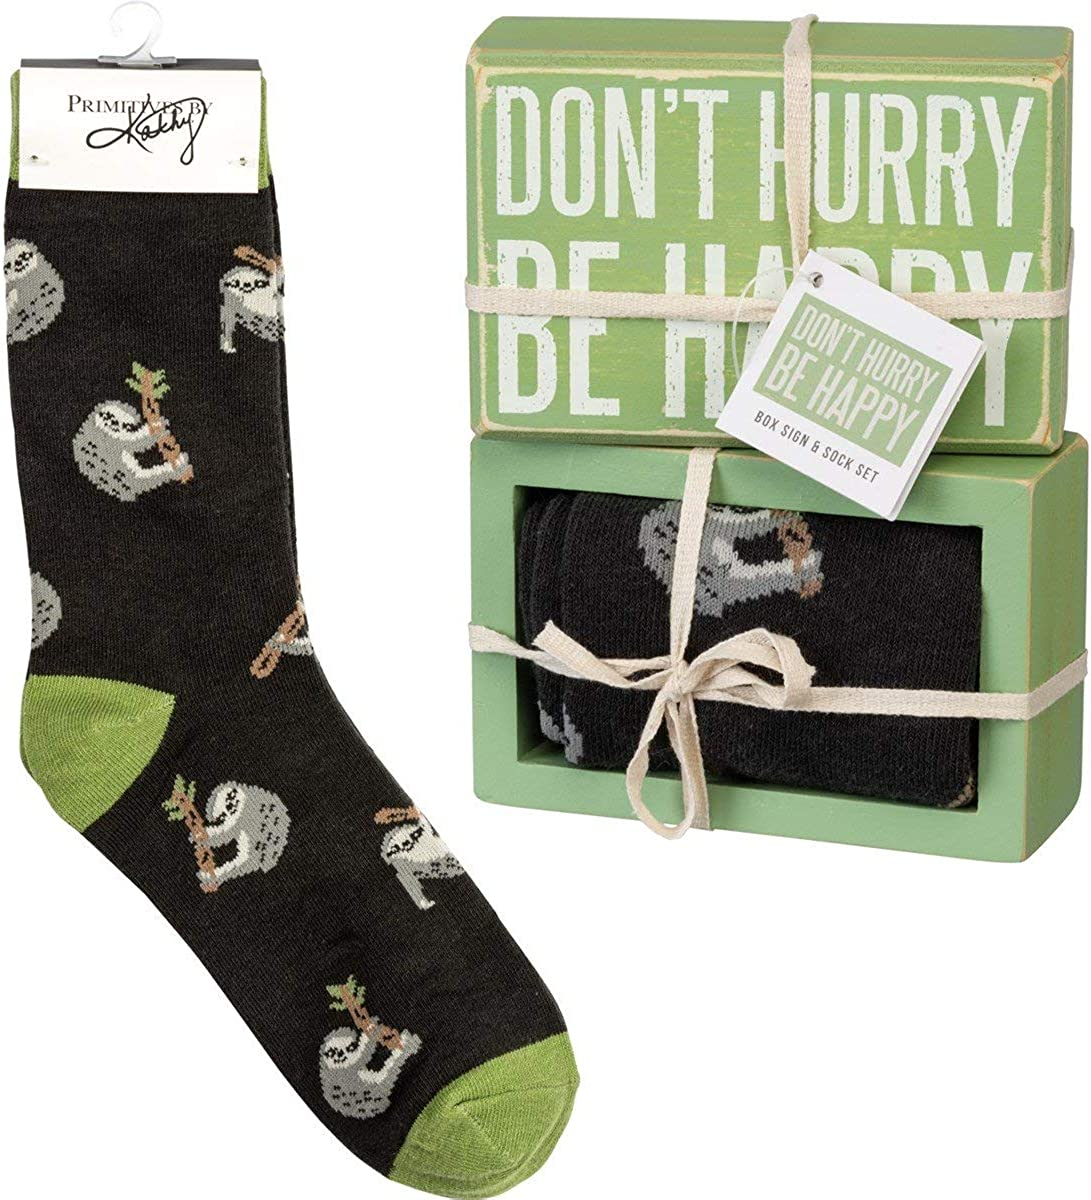 PRIMITIVES BY KATHY Don't Hurry Be Happy Box Sign and Socks Giftable Set